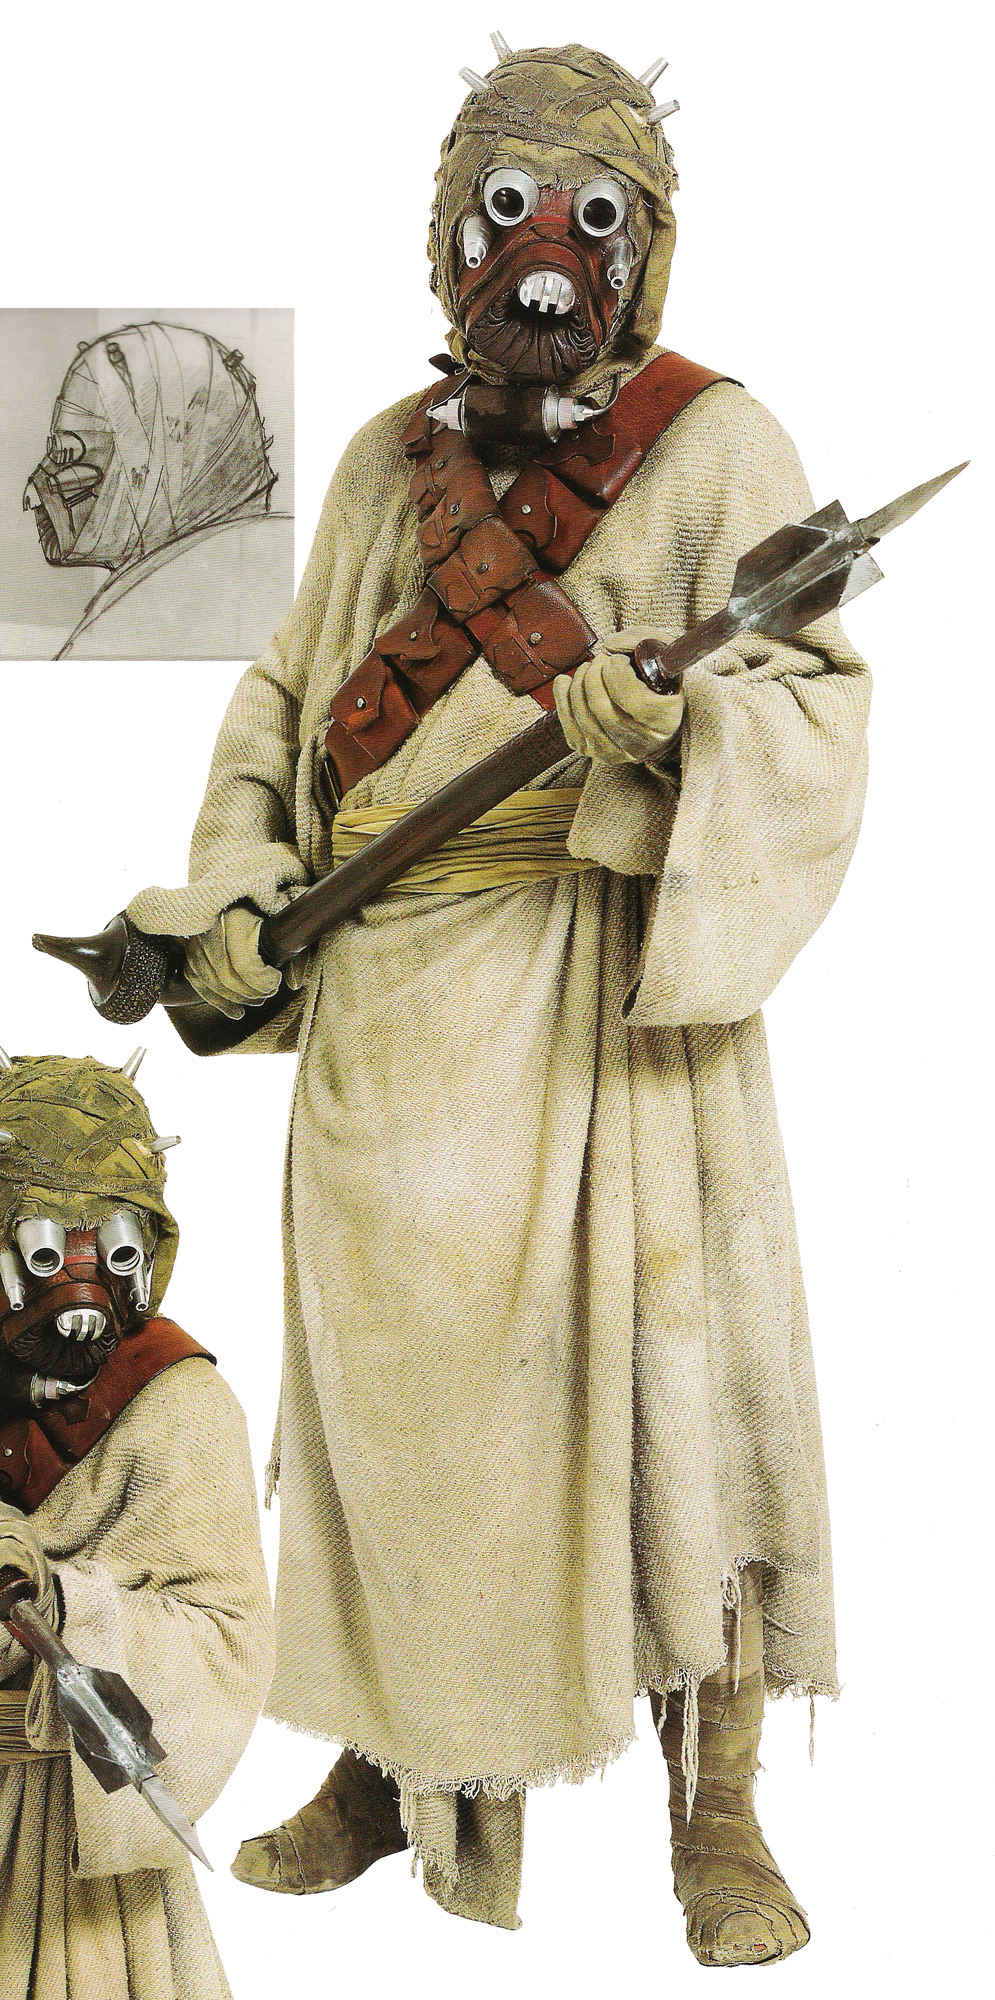 www.studiocreations.com/howto/tuskenraider/images/tusken_chrncls_full_body.jpg